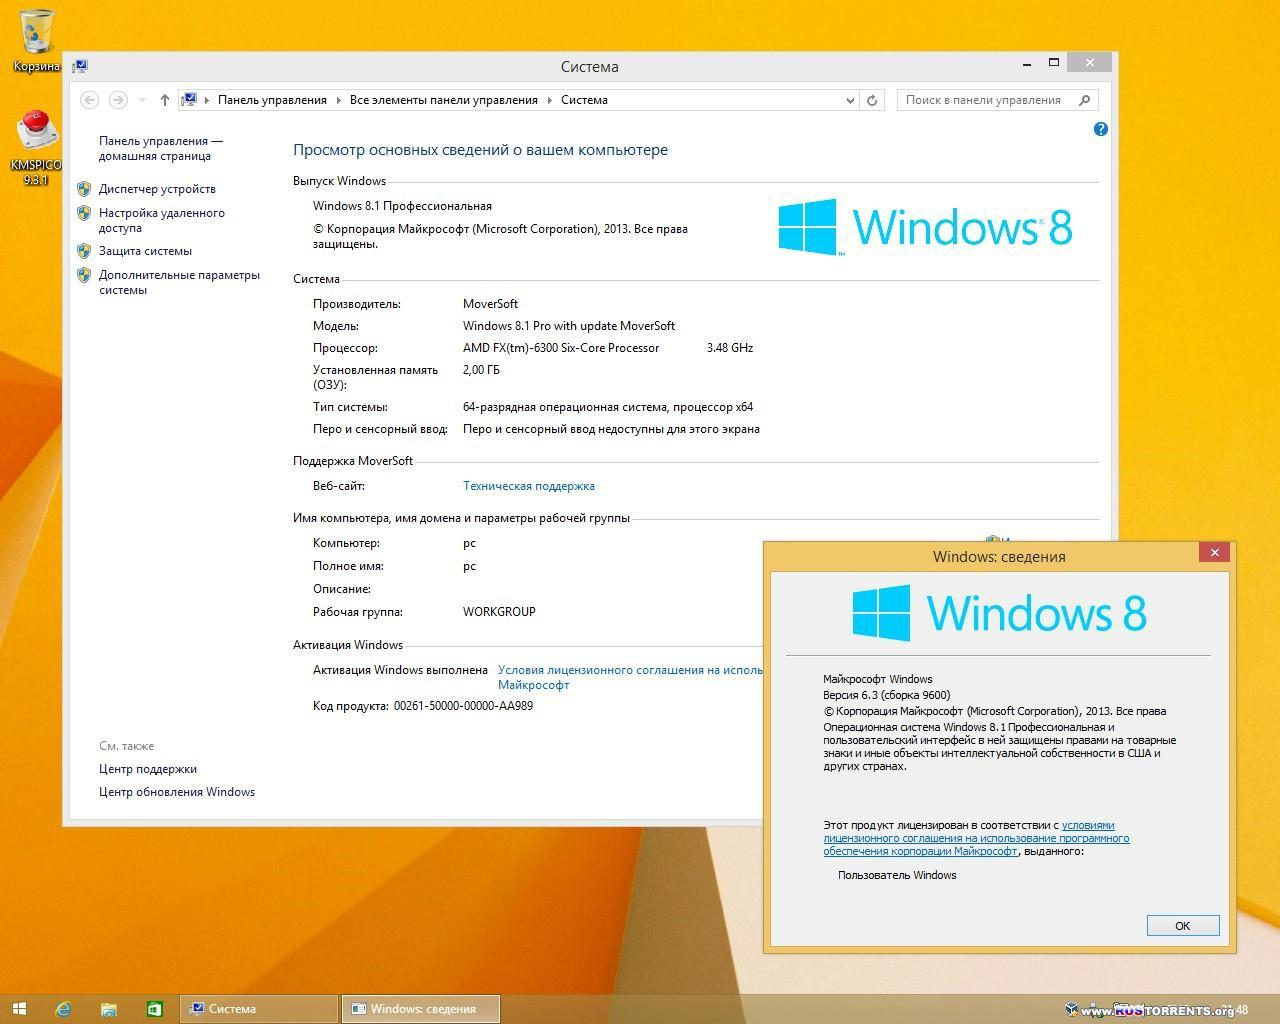 Windows 8.1 Pro x64 with update MoverSoft 07.2014 6.3.9600 RUS